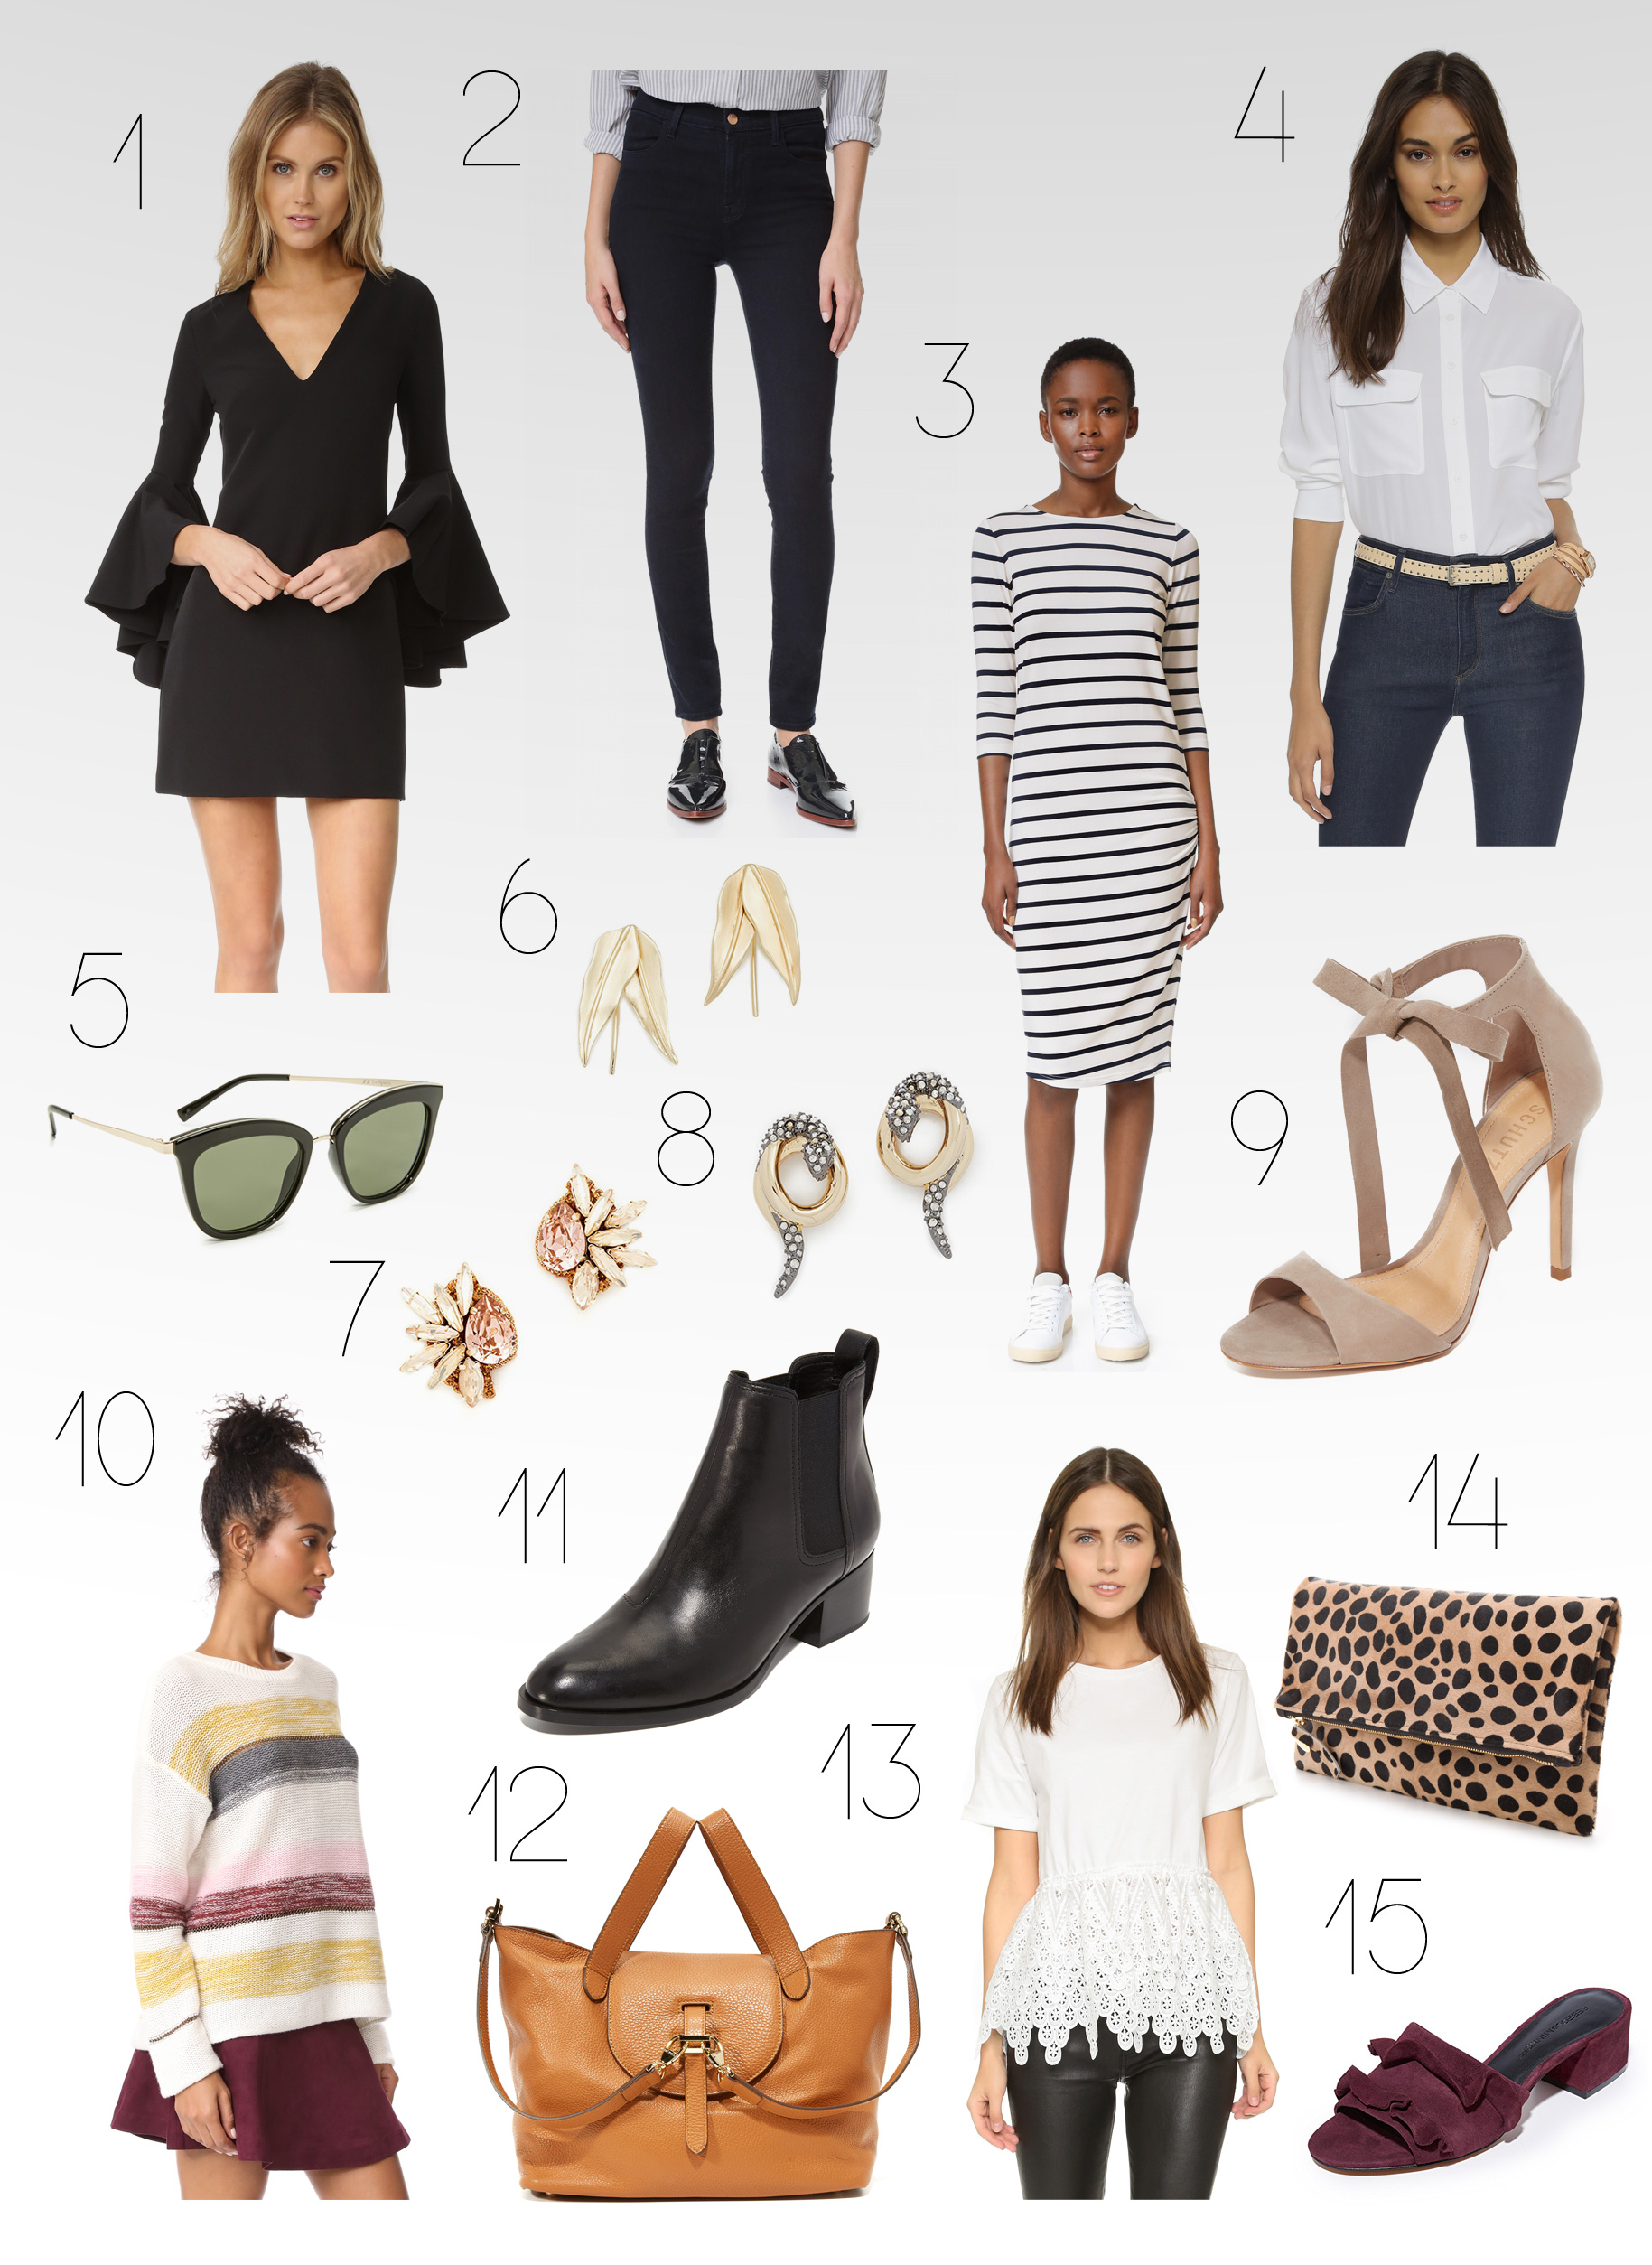 Maggie-a-la-Mode---Wednesday-Wish-List-Shopbop-Sale-Picks.jpg